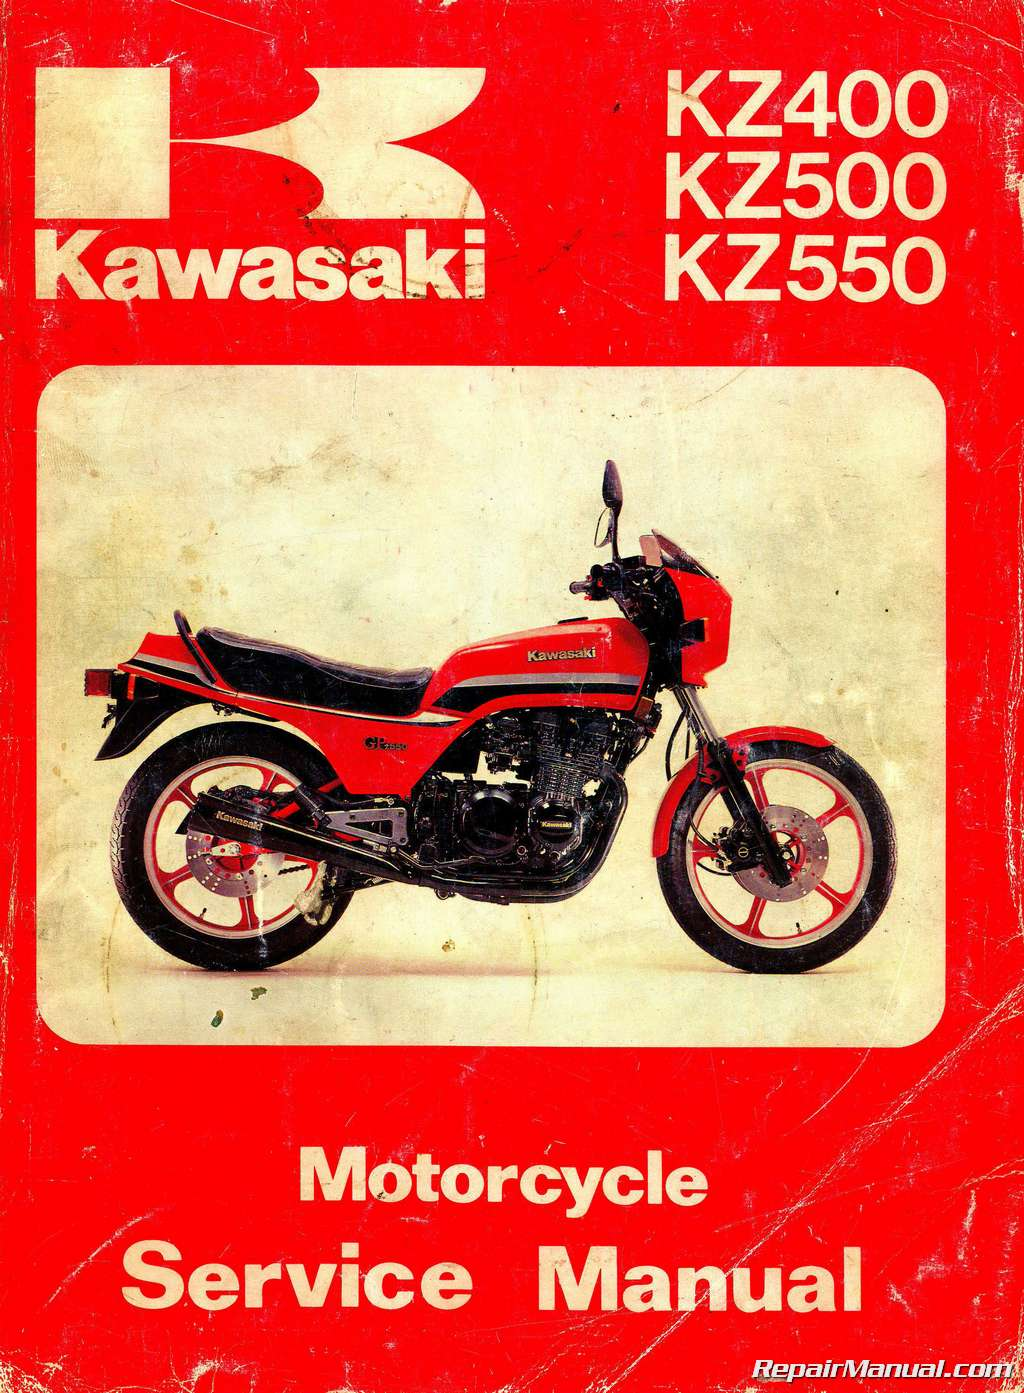 Kawasaki KZ400 KZ500 KZ550 Motorcycle Service Manual on honda motorcycle repair diagrams, electrical diagrams, pinout diagrams, engine diagrams, troubleshooting diagrams, lighting diagrams, motor diagrams, switch diagrams, smart car diagrams, gmc fuse box diagrams, internet of things diagrams, hvac diagrams, sincgars radio configurations diagrams, series and parallel circuits diagrams, electronic circuit diagrams, friendship bracelet diagrams, led circuit diagrams, battery diagrams, transformer diagrams,